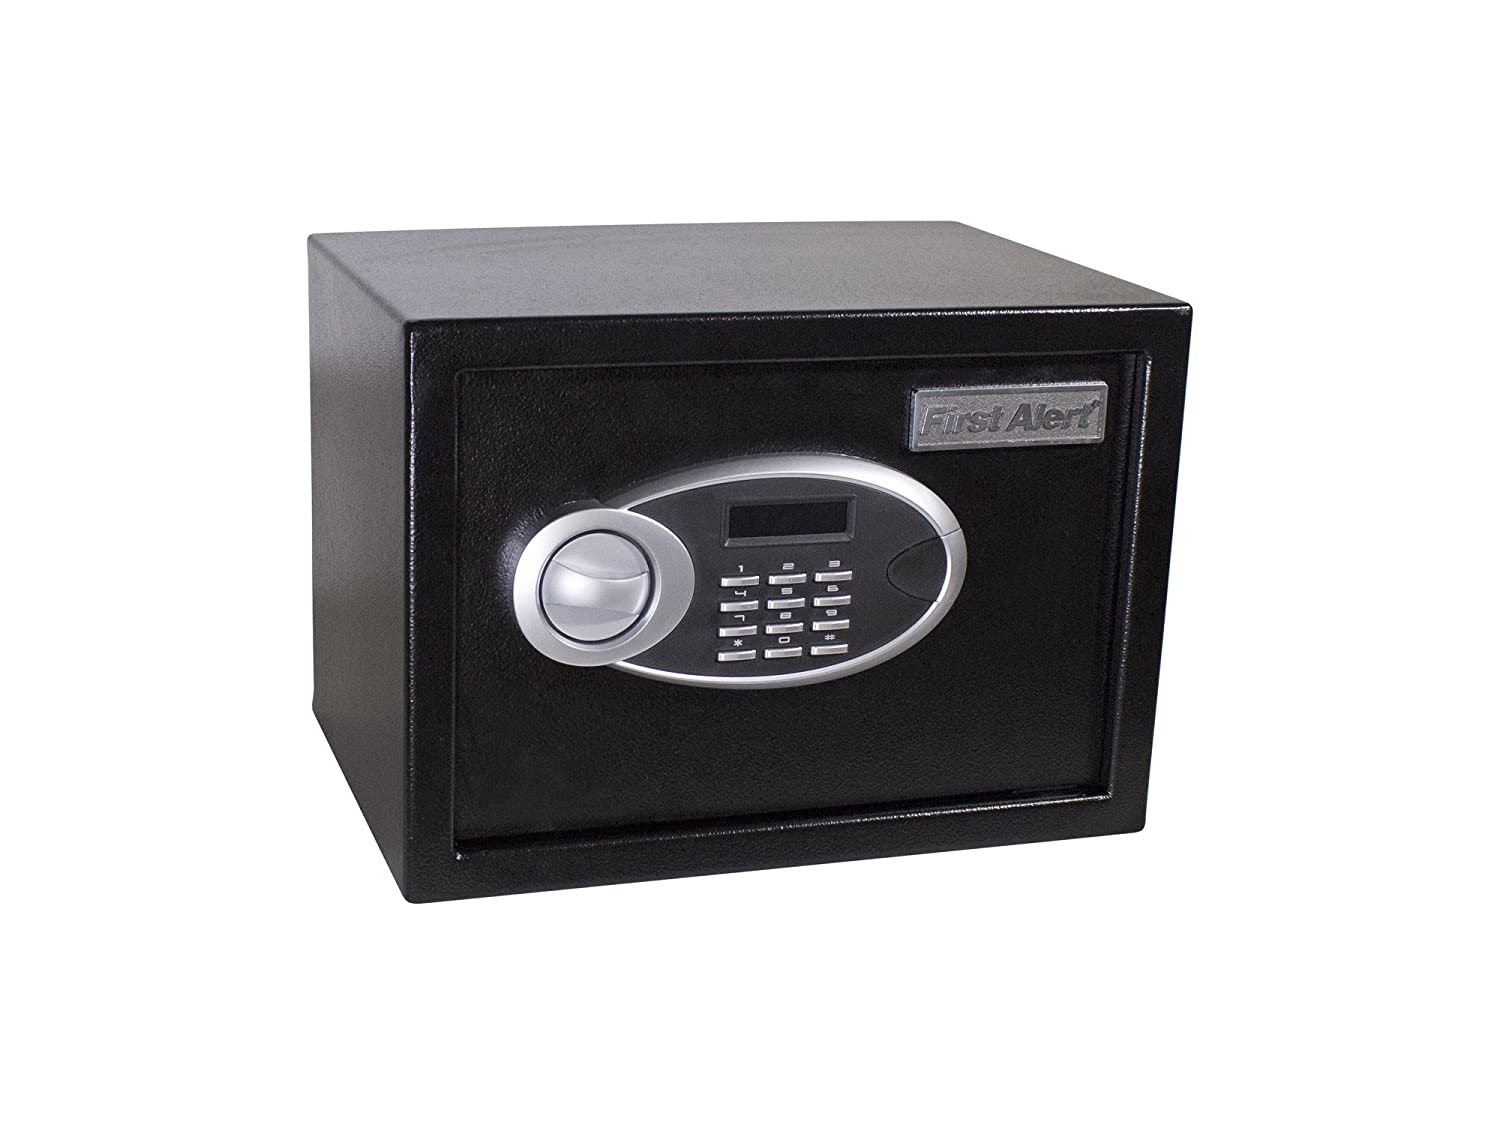 Amazon.com: First Alert 4005DFB Anti-Theft Safe with Digital LOCK, .57 Cubic-Foot, Black: Home Improvement